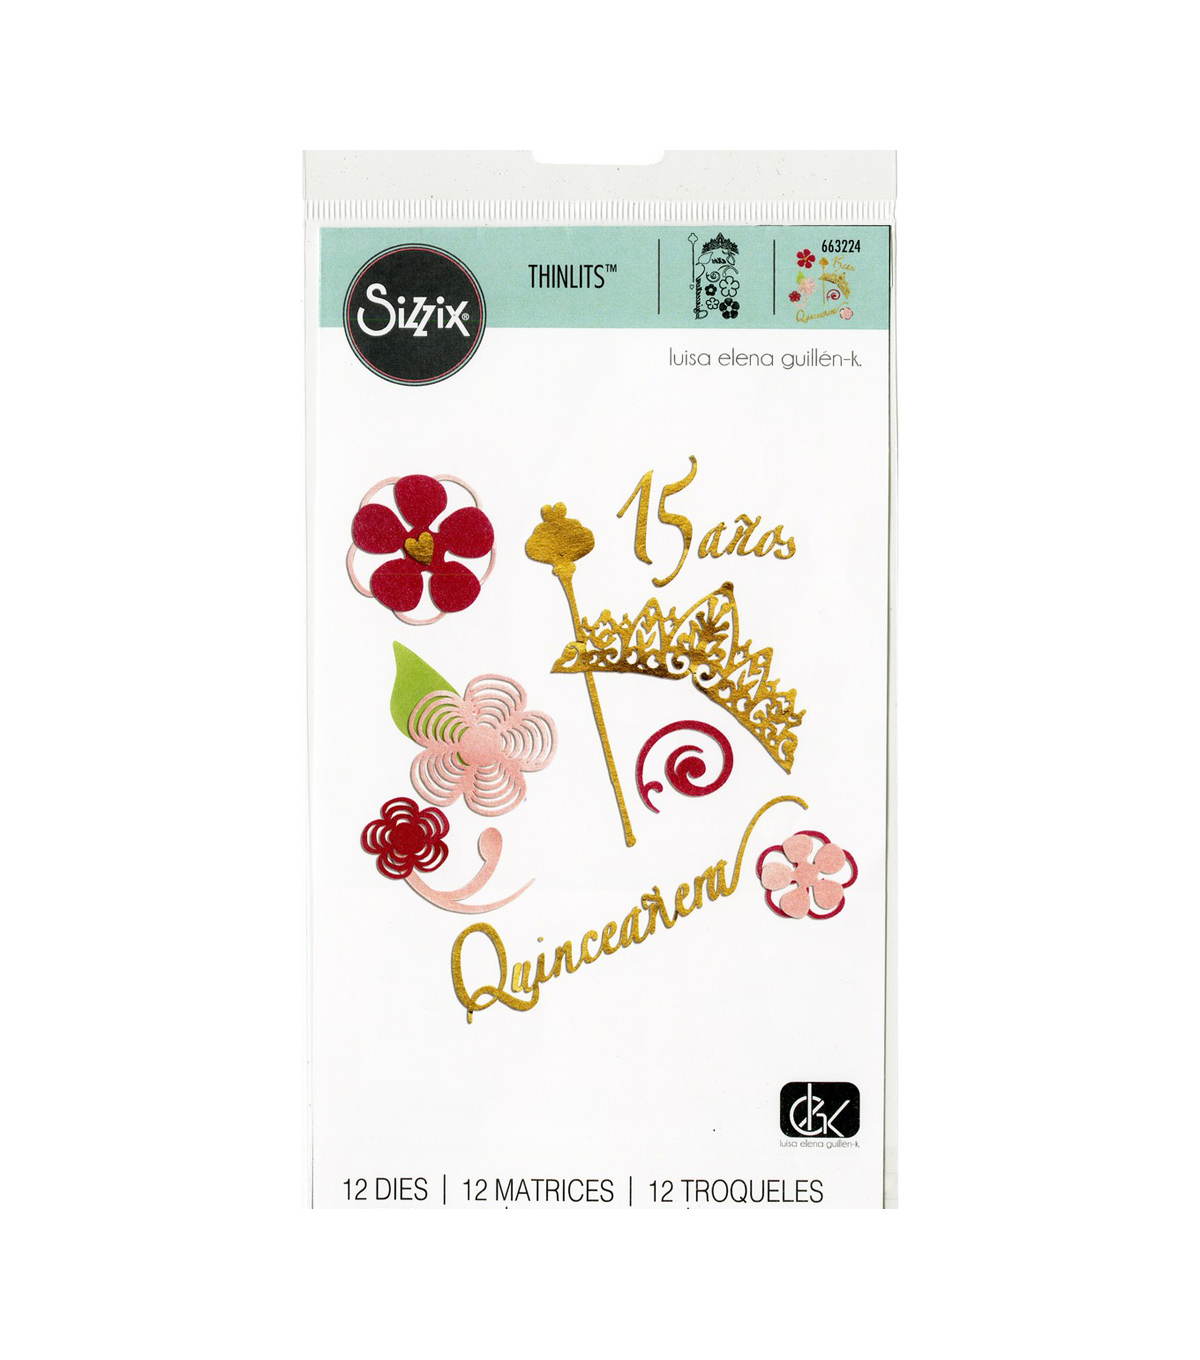 Sizzix Thinlits Dies By Luisa Elena Guillen-K 12/Pkg-Set De Quinceanera